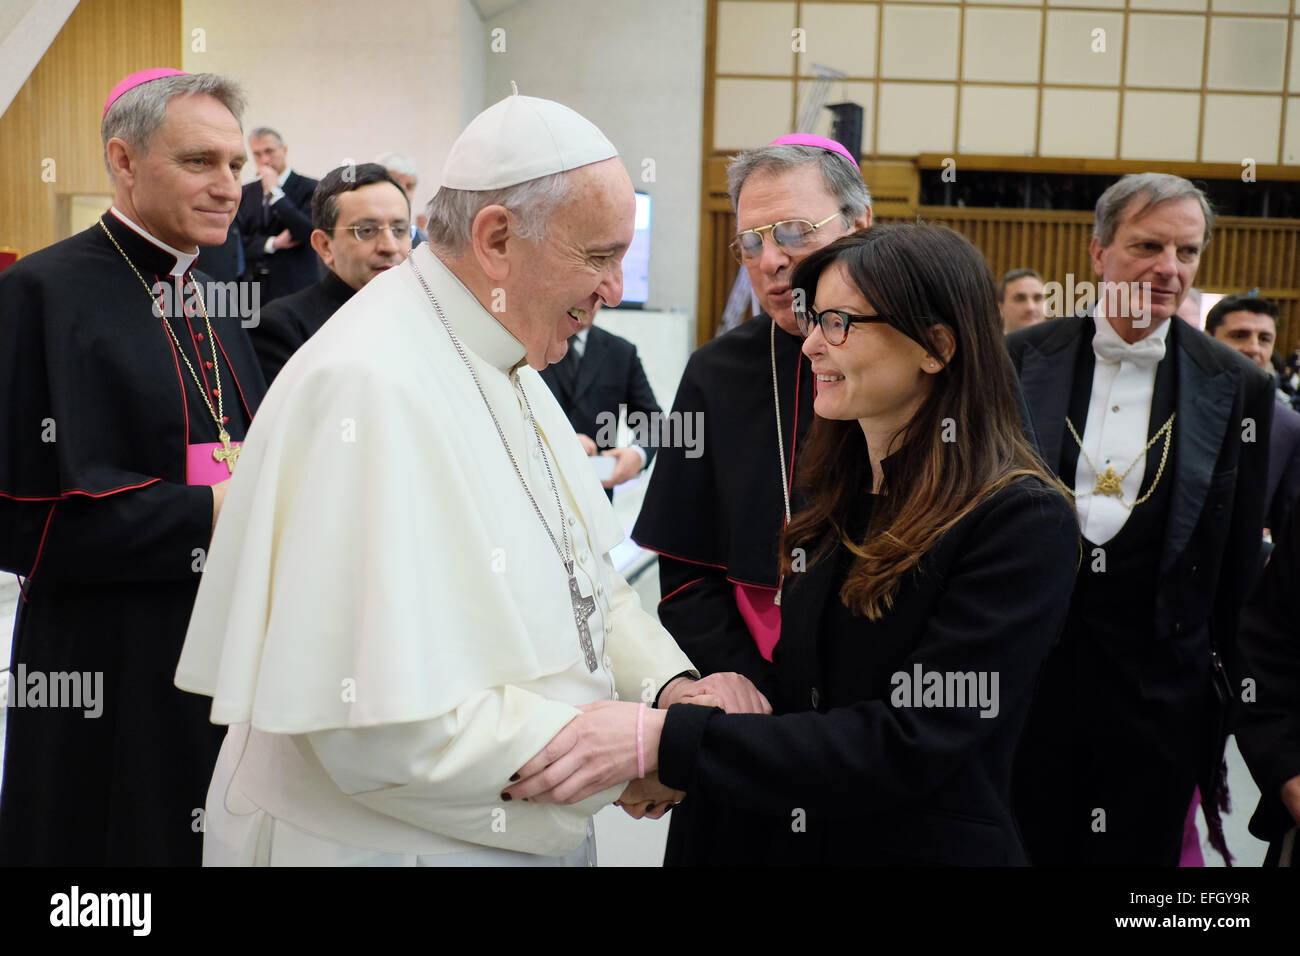 Lucia Annibali ( The girl disfigured with acid by her ex boyfriend )meets  Pope Francis - general audience 04 feb 2015. Credit  Realy Easy Star Alamy  Live ... 183e79c6167